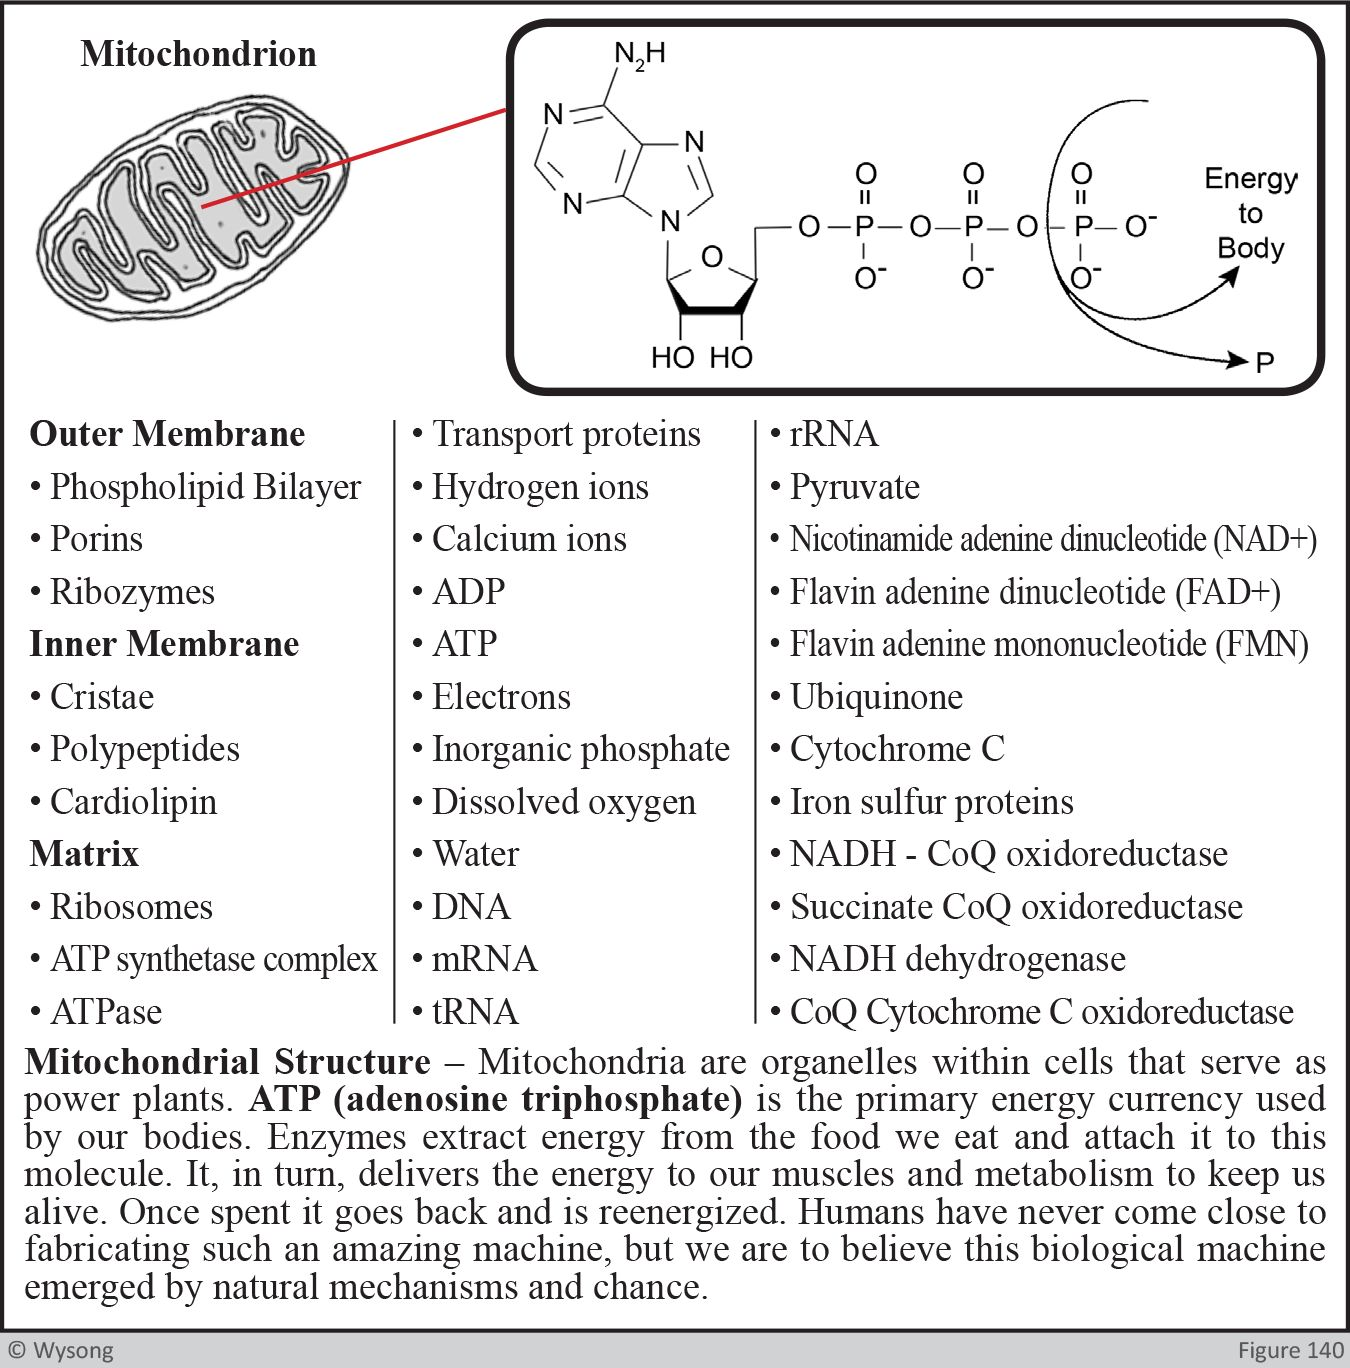 Mitochondrial Structure, ATP